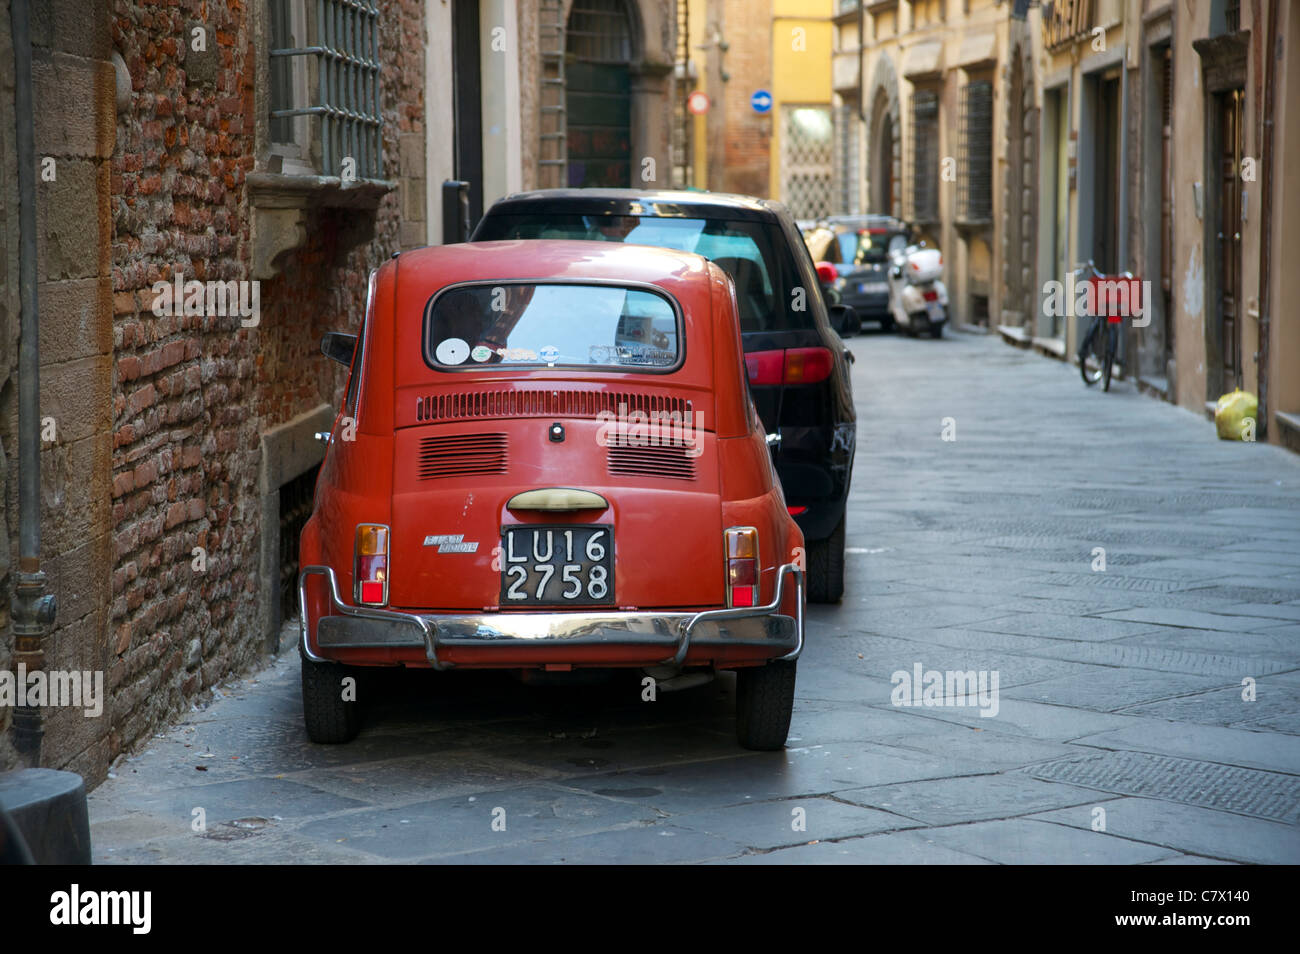 2 cv citroen car stock photos  u0026 2 cv citroen car stock images